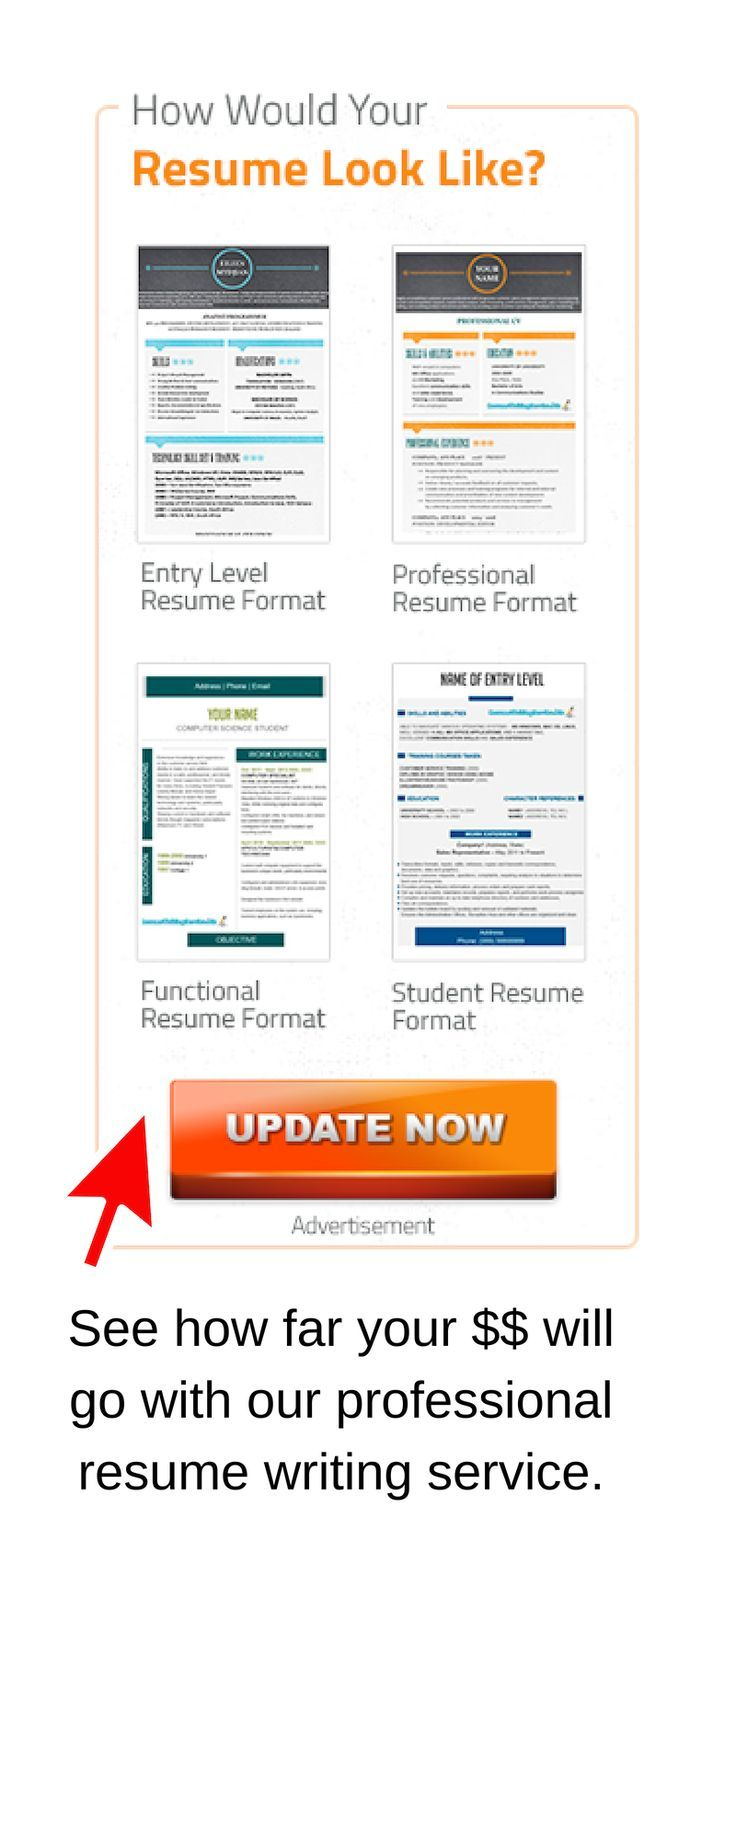 Our Online Resume Writer Service Is One Of The Largest Professional Resume Services Resume Writing Services Professional Resume Writing Service Resume Writing